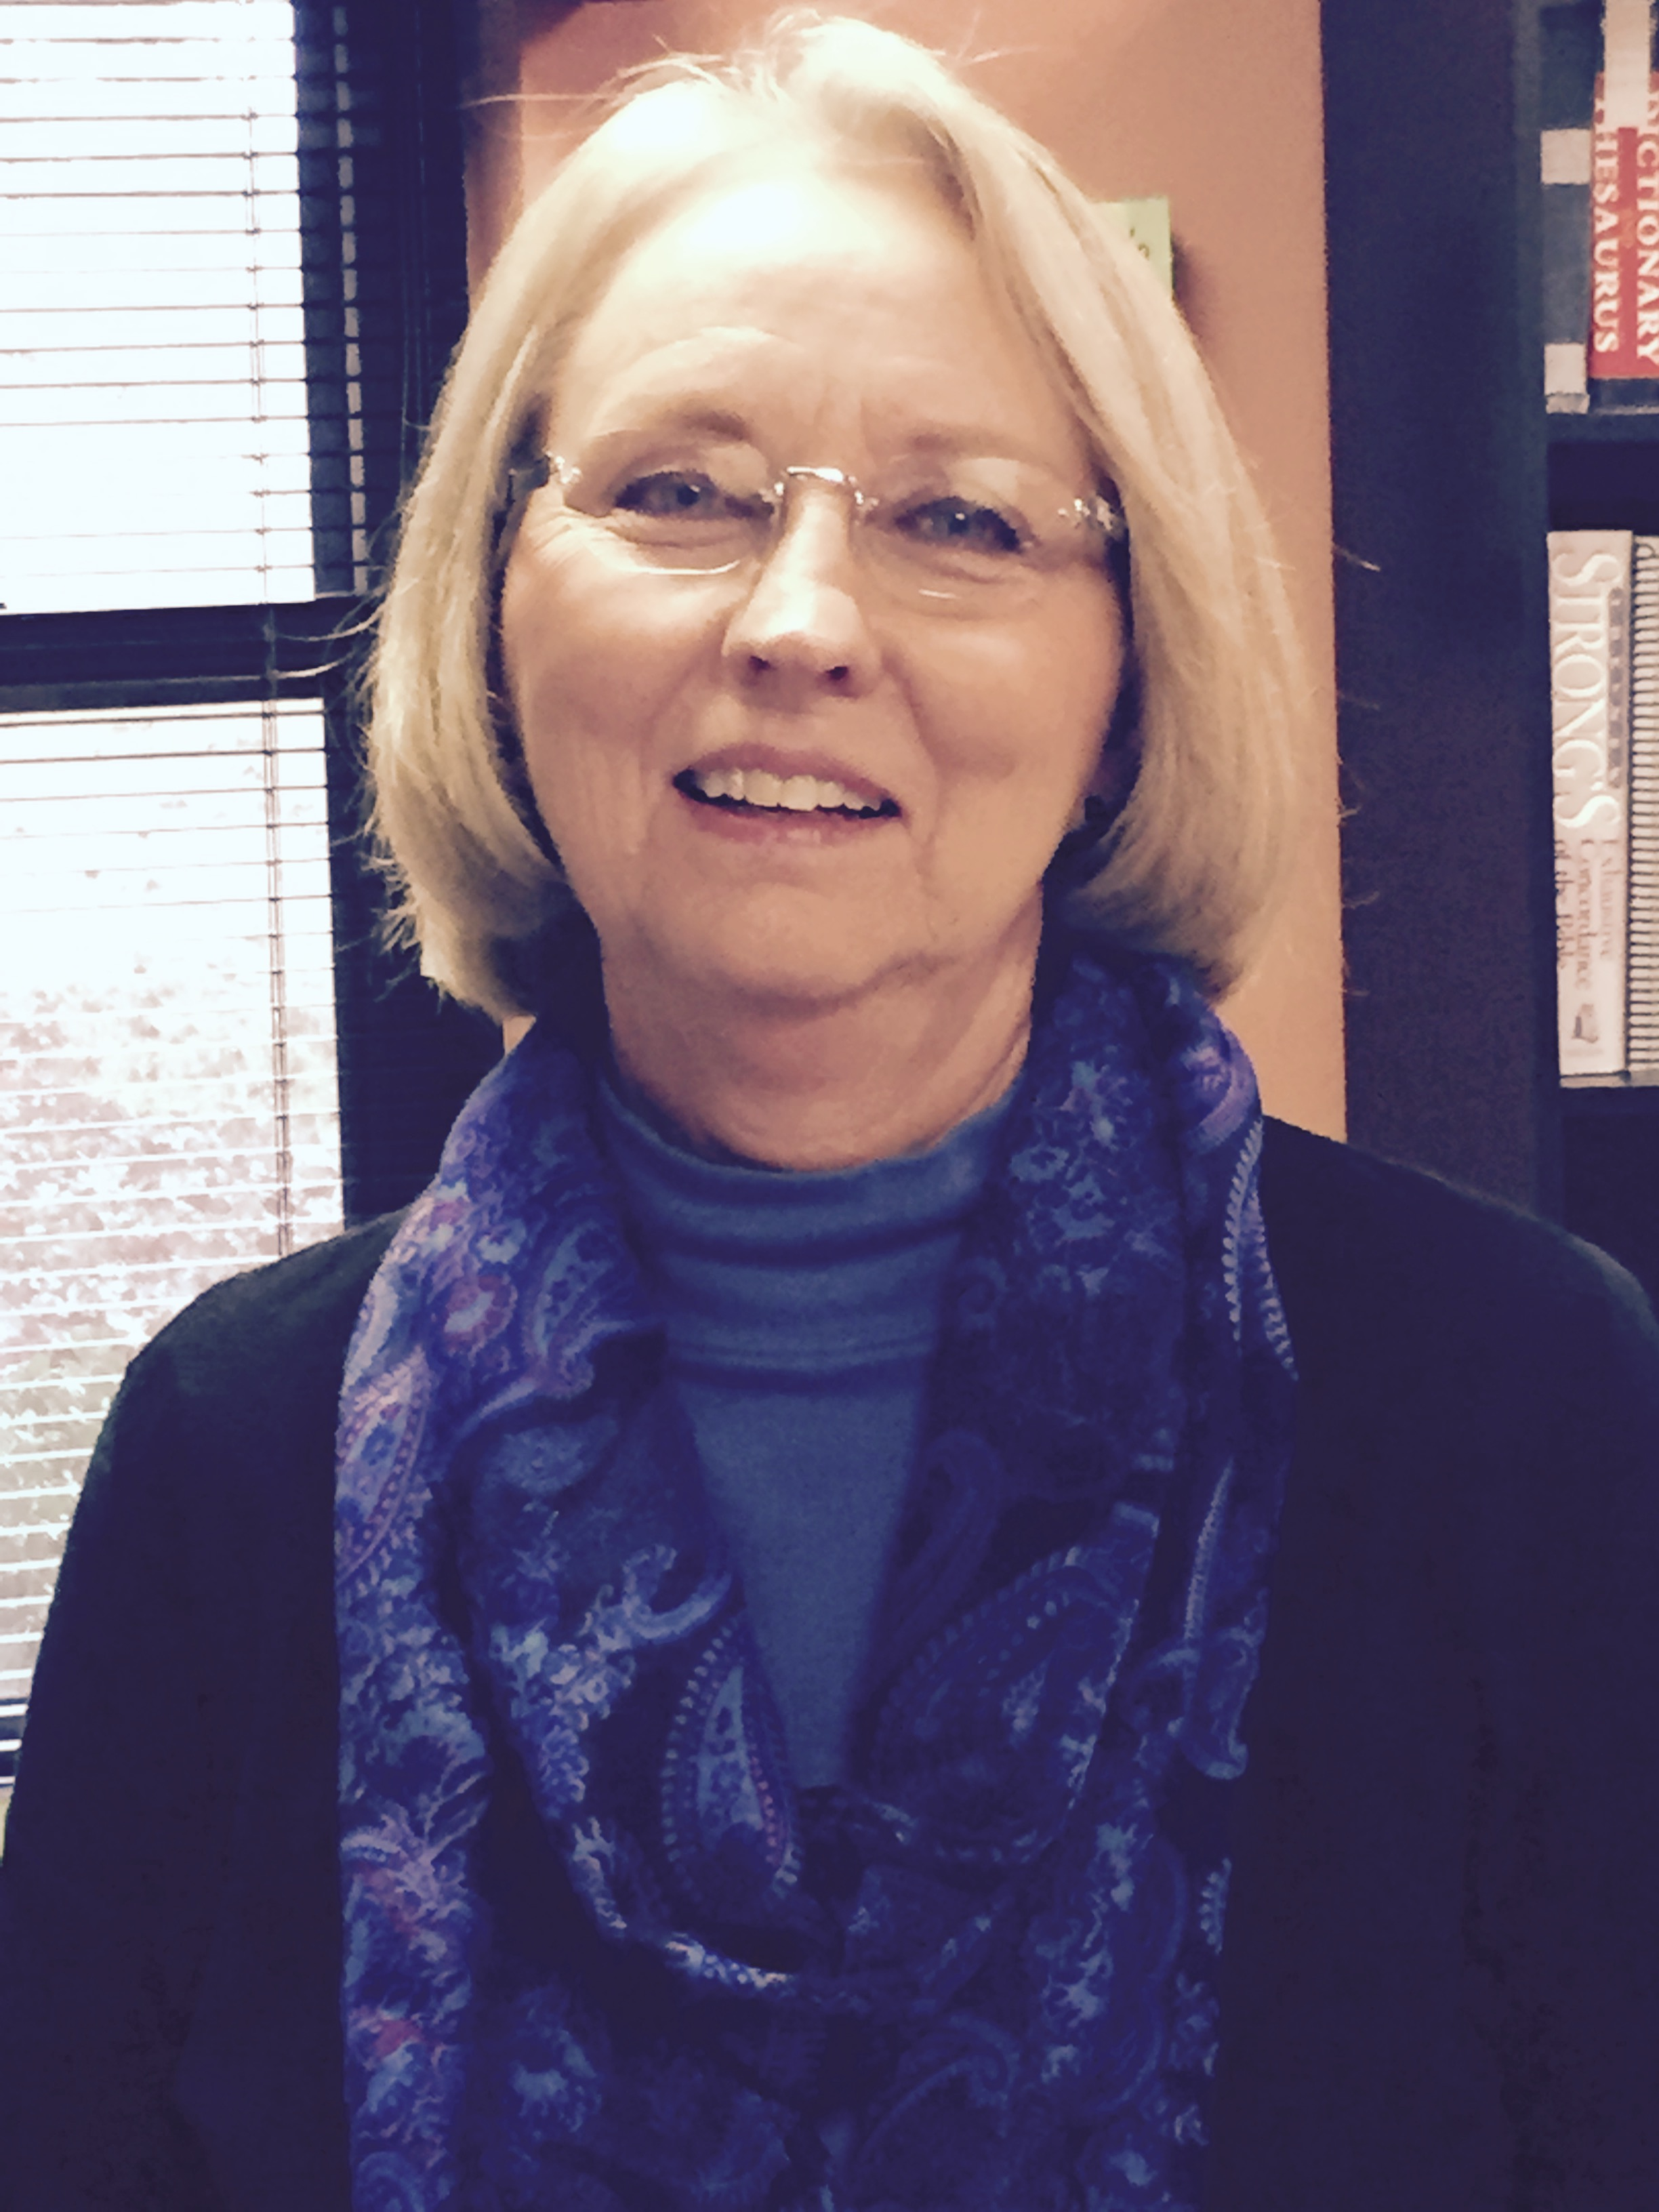 Office Manager - Janice Flannery